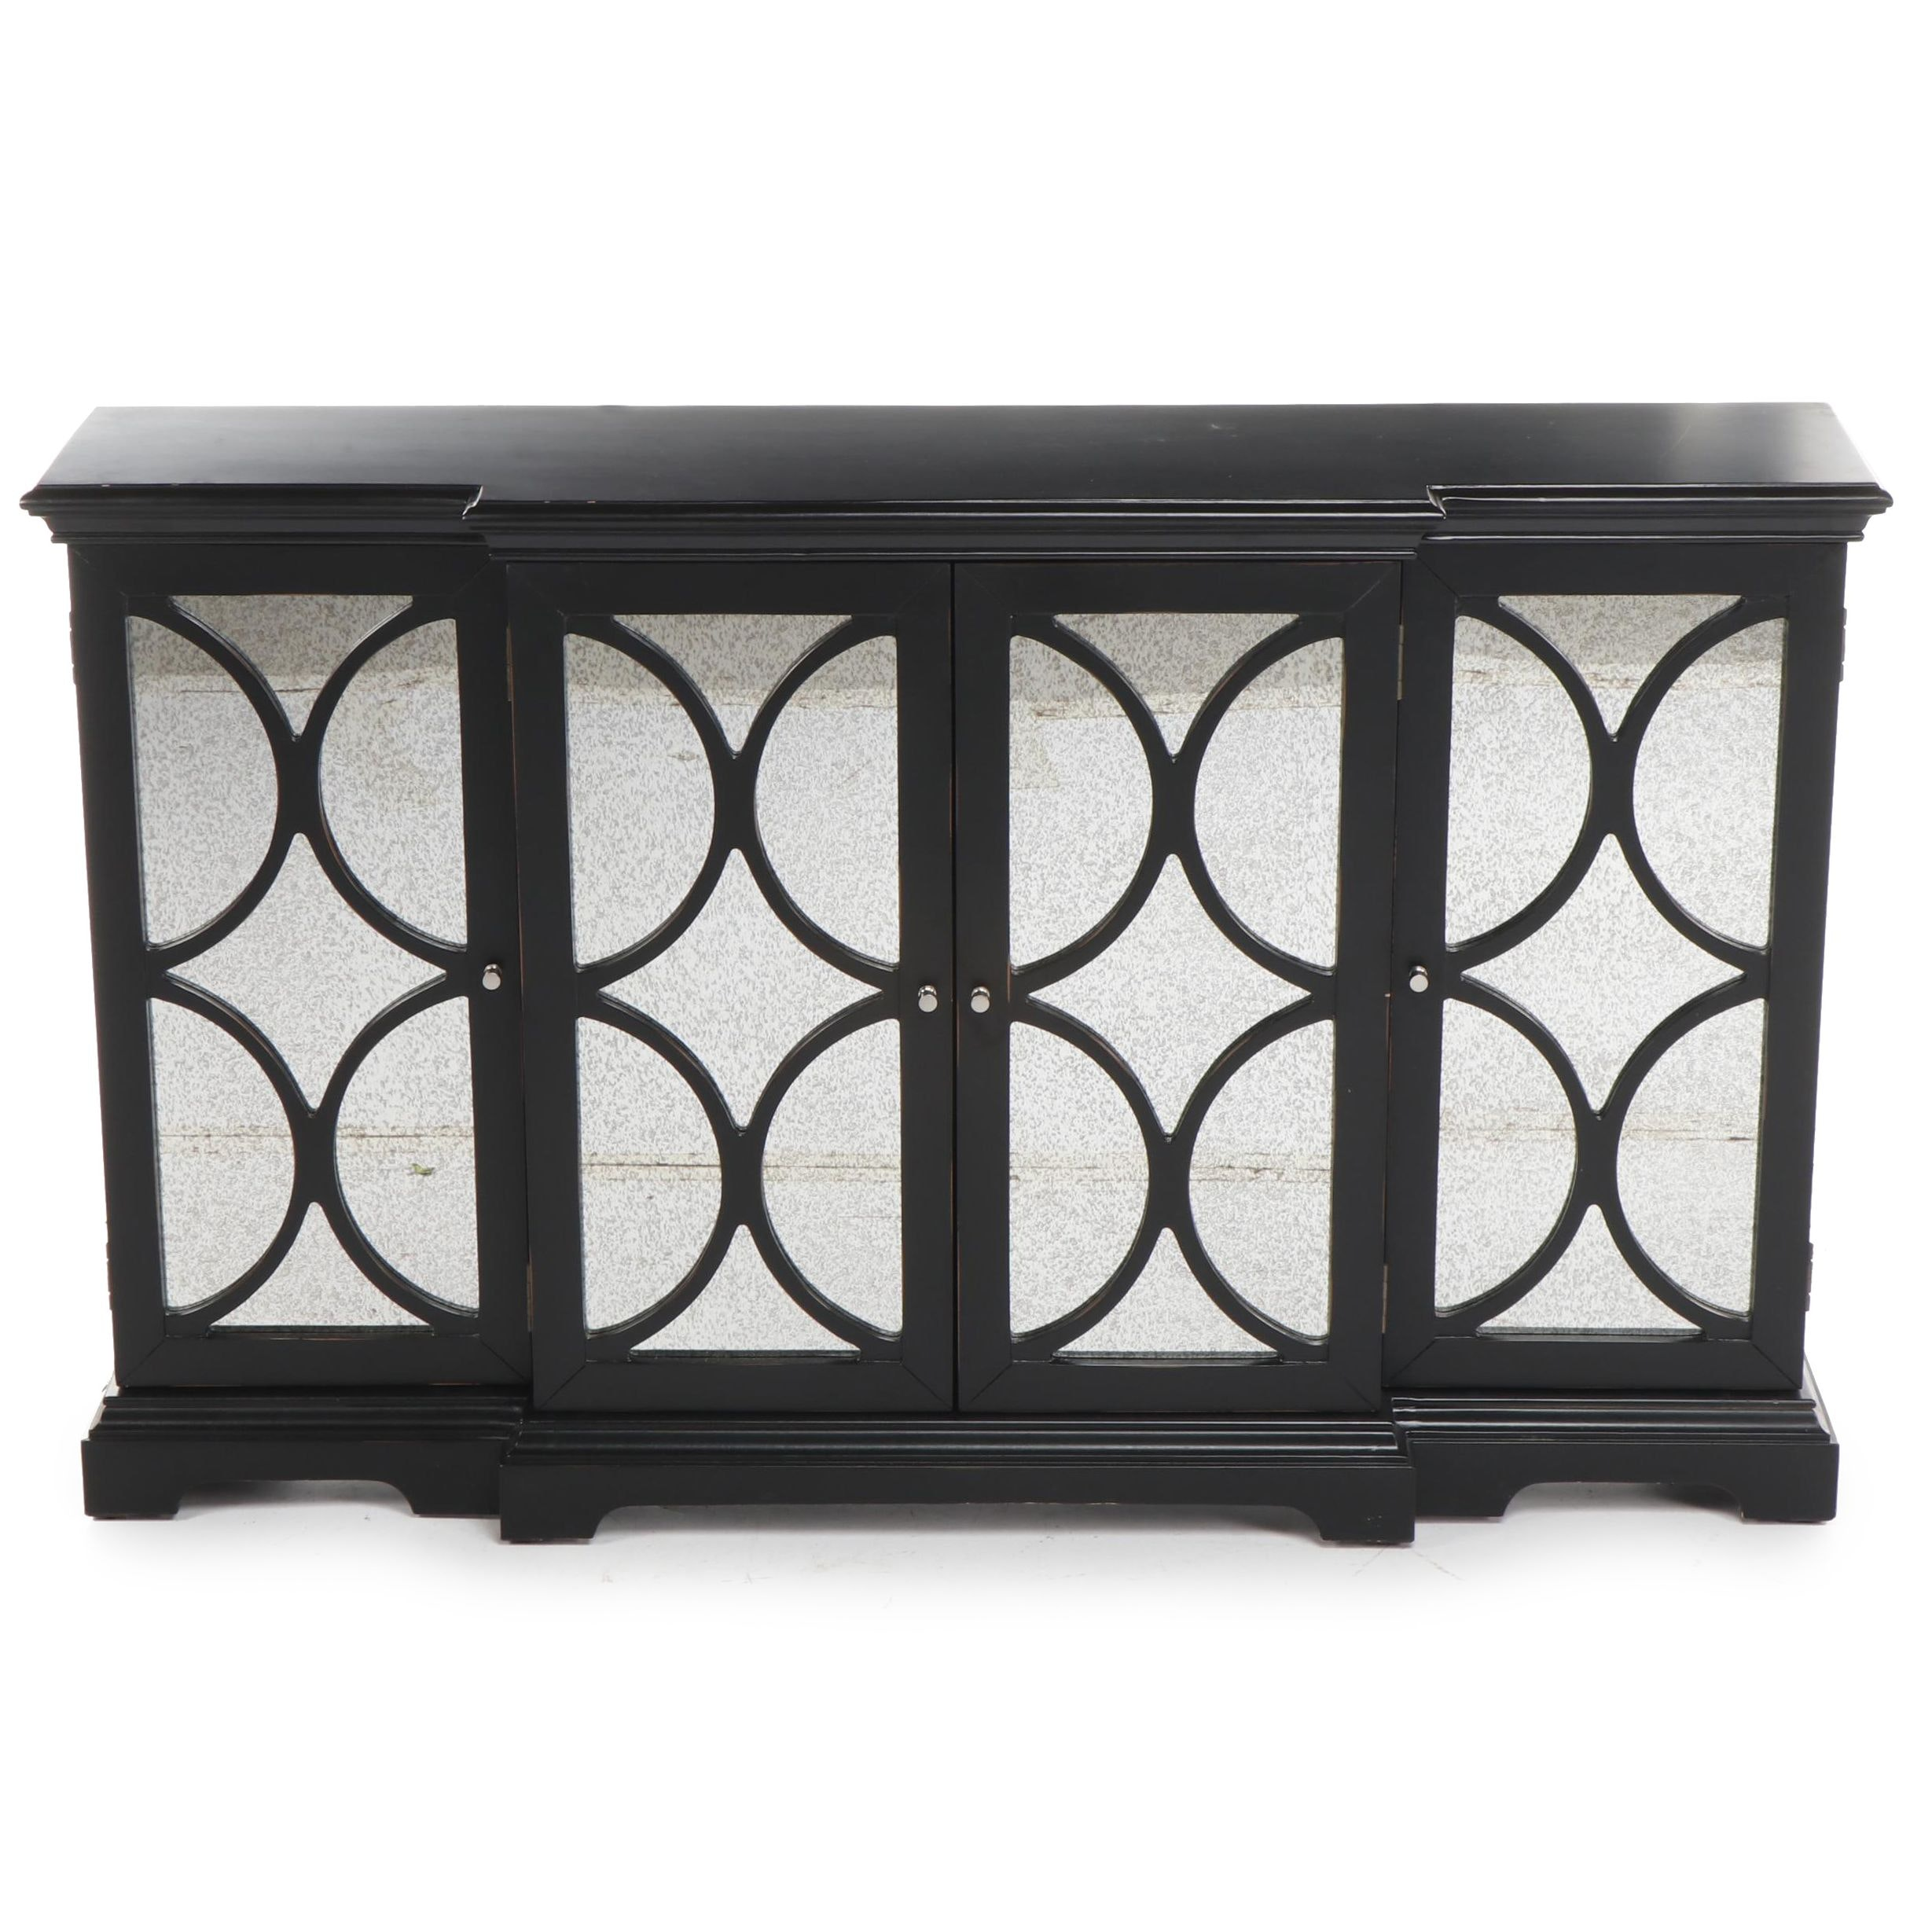 Home Meridian Black Cabinet with Mirrored Doors and Decorative Wooden Grilles